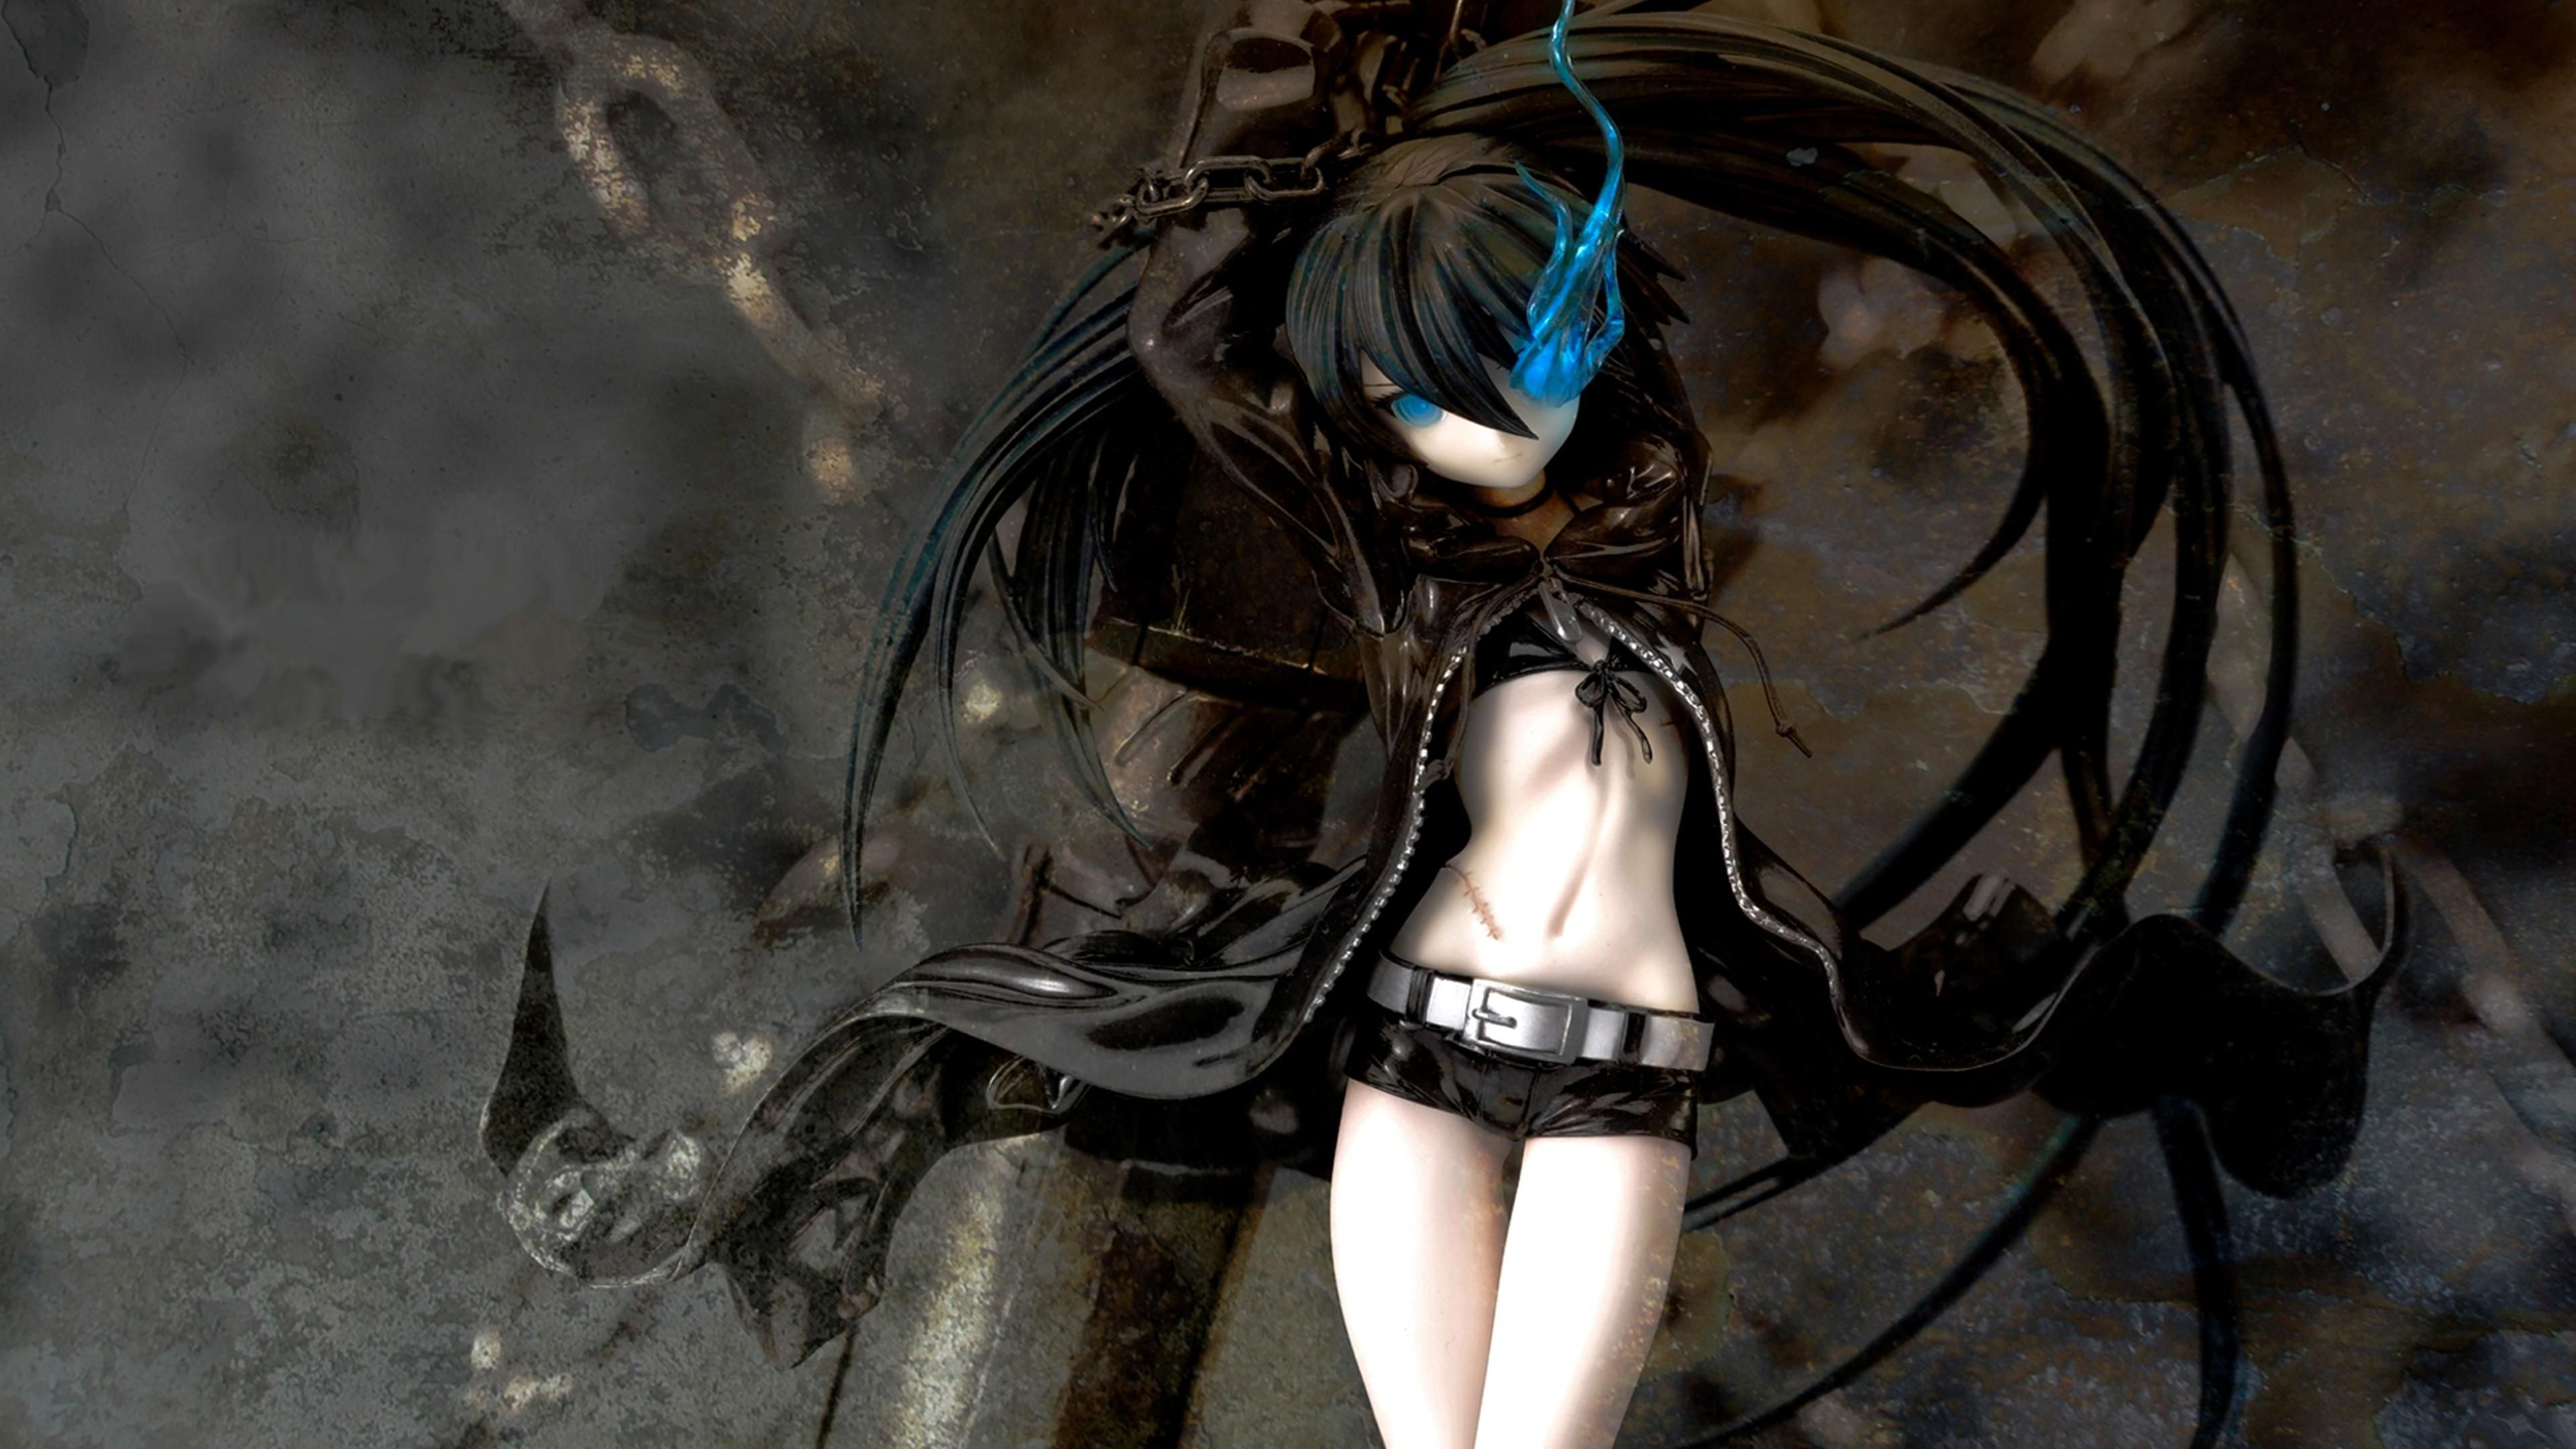 Dark Anime Girl 3d Desktop Hd Wallpaper